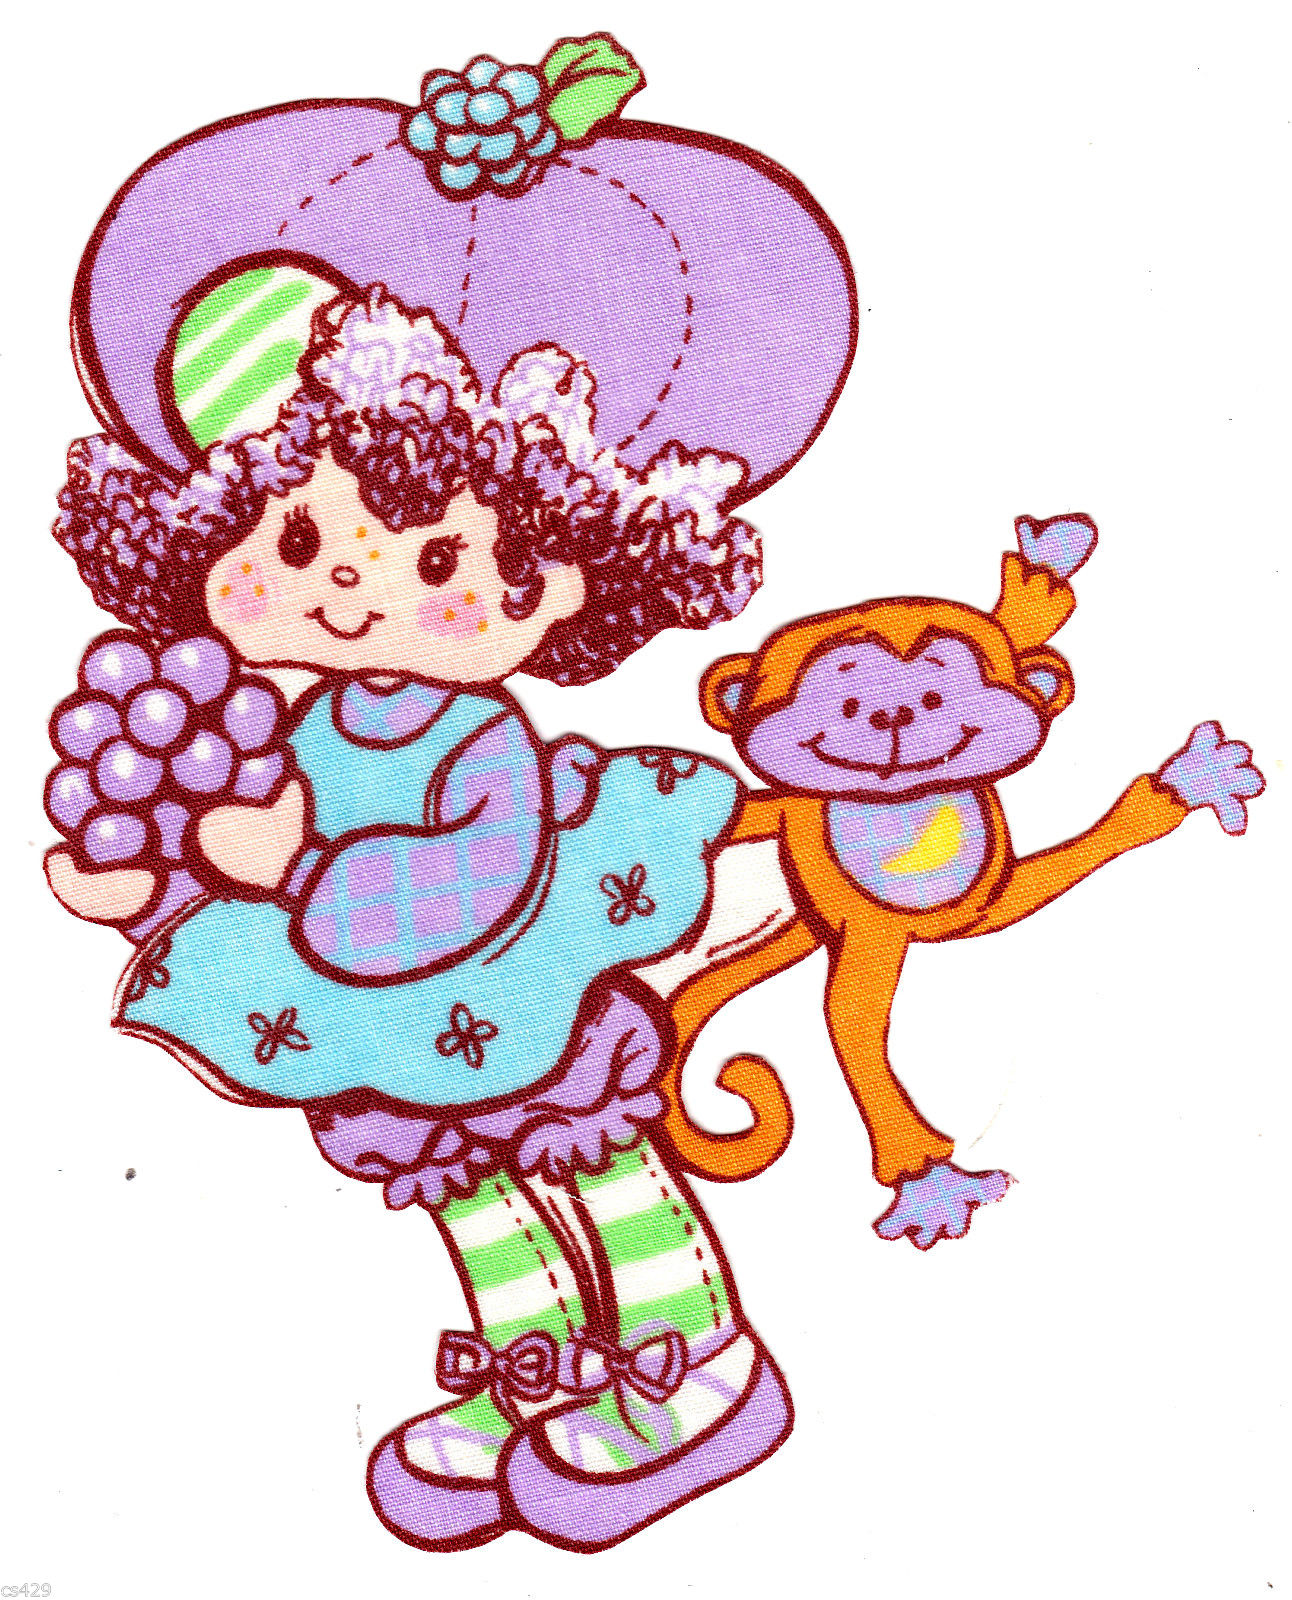 Vintage strawberry shortcake clipart clipart royalty free library Pin by Leslie Barrera on Vintage Strawberry Shortcake ... clipart royalty free library